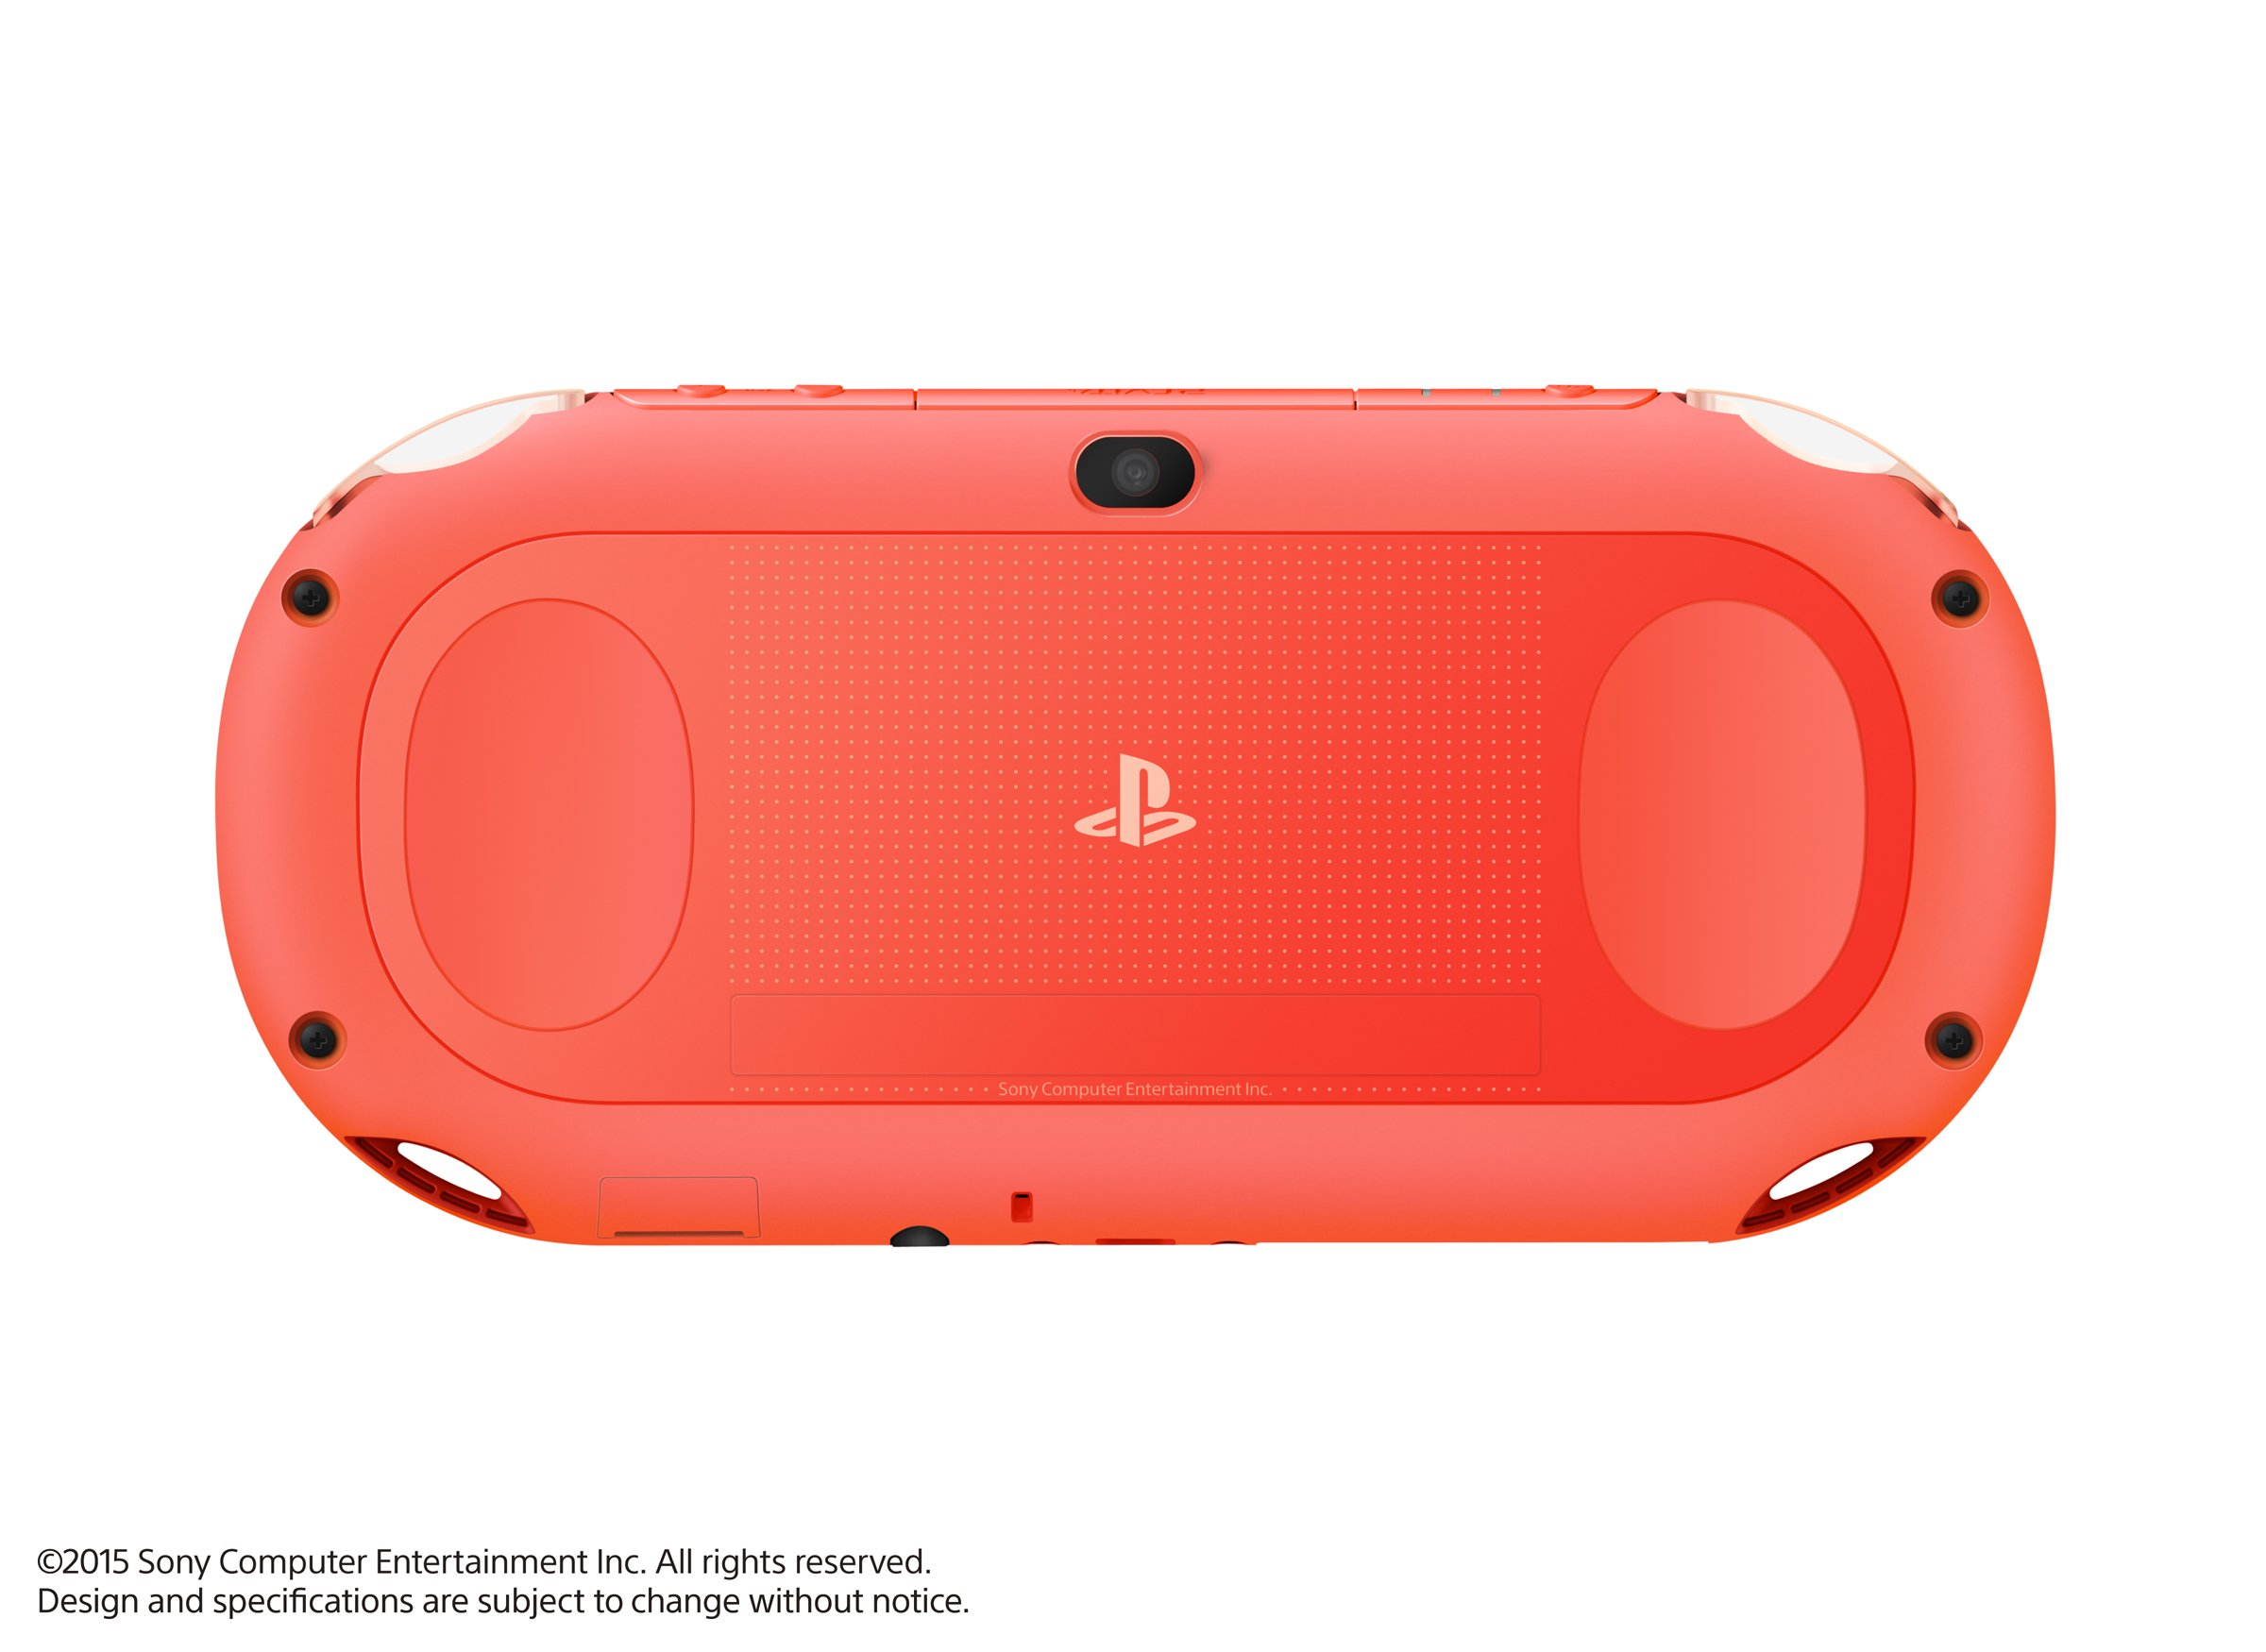 PlayStation Vita Wi-Fi model Neon Orange (PCH-2000ZA24) Japanese Ver. Japan Import by Sony (Image #4)